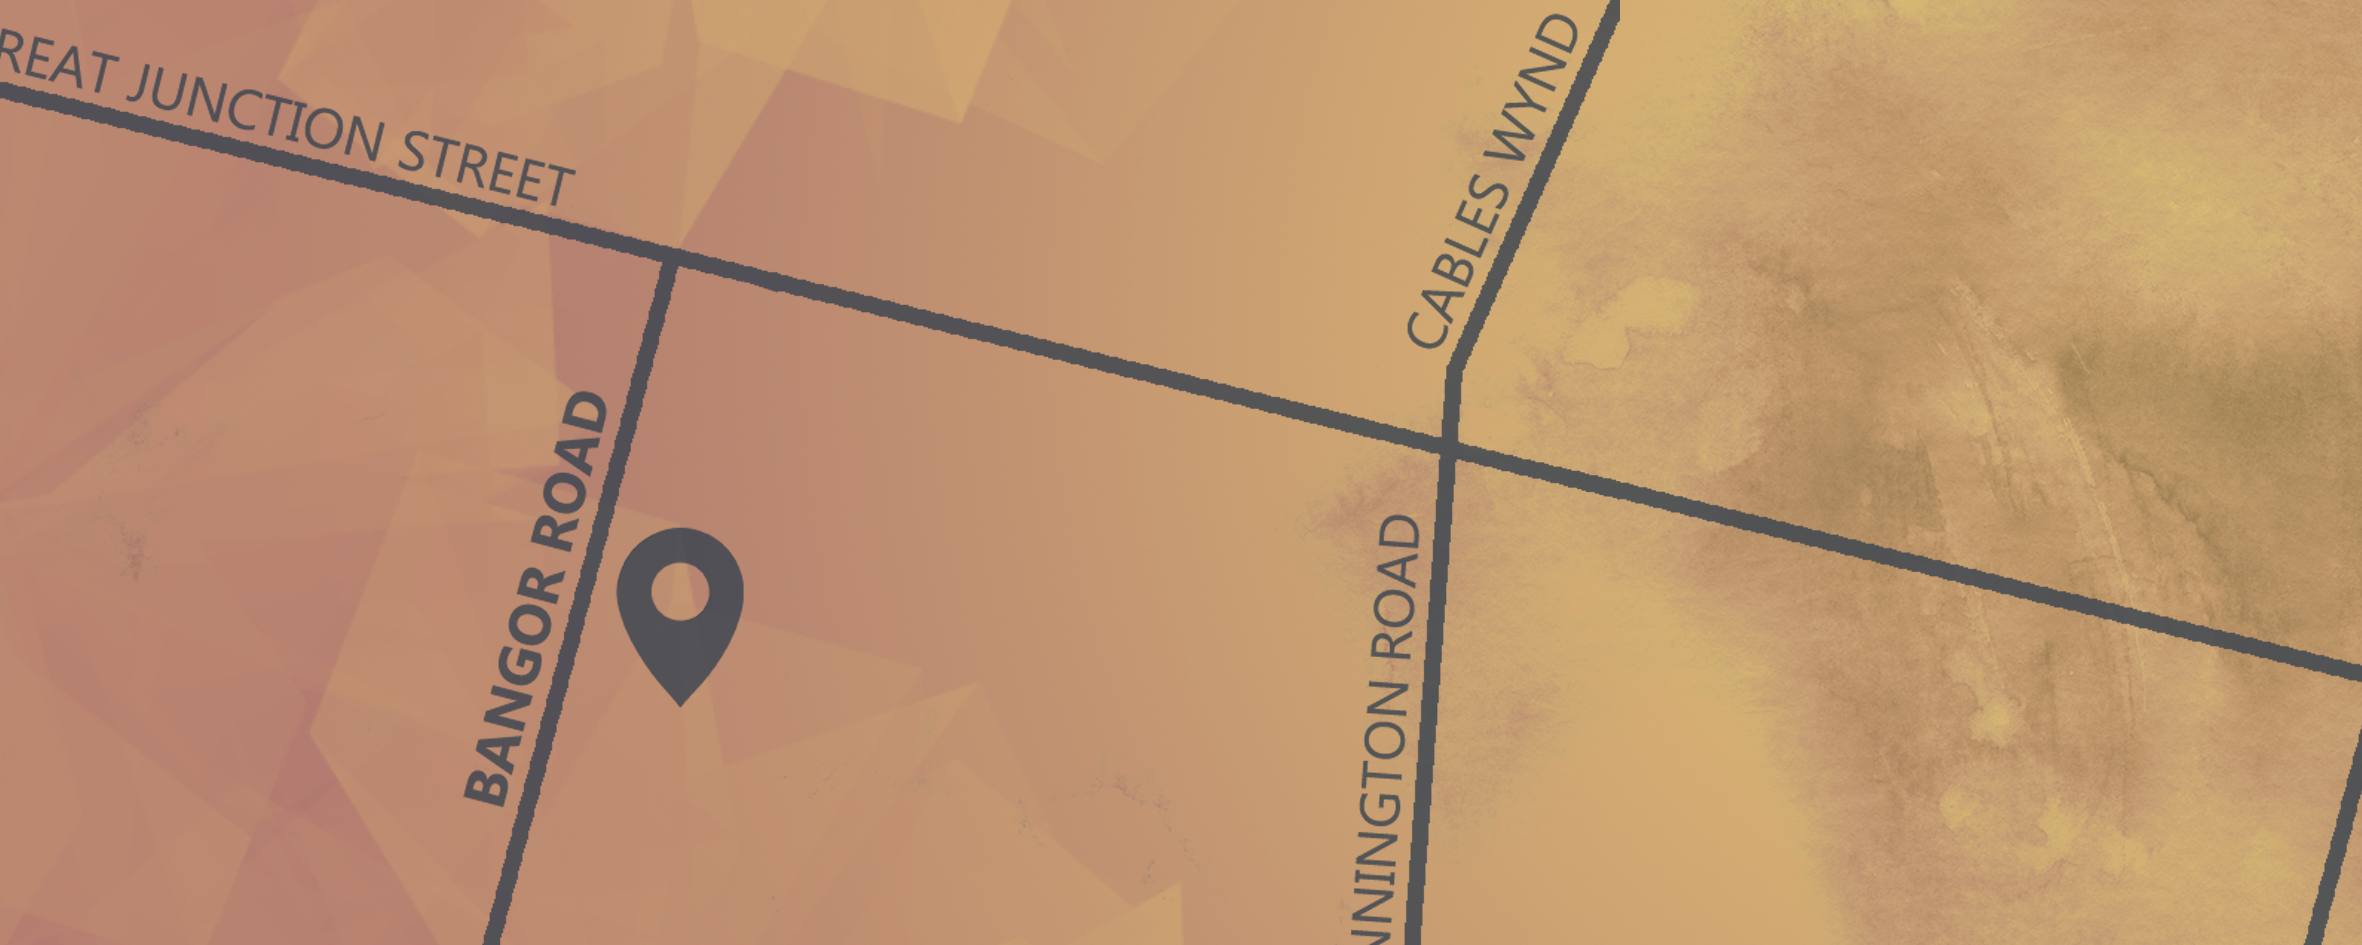 grace church leith map.png